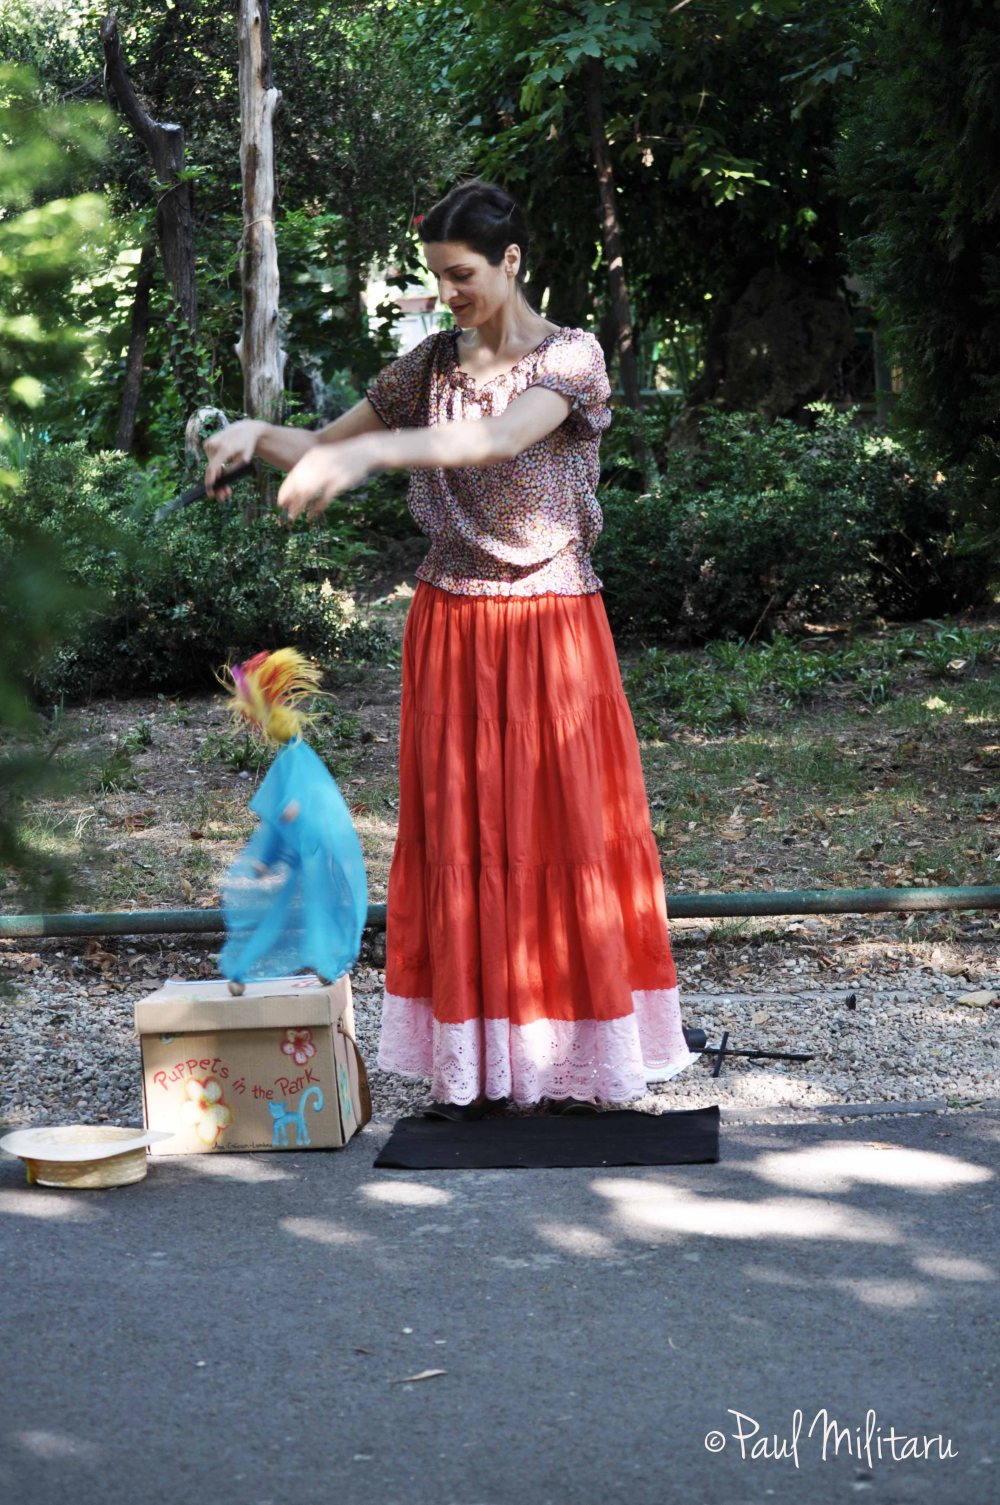 she and the dancing doll